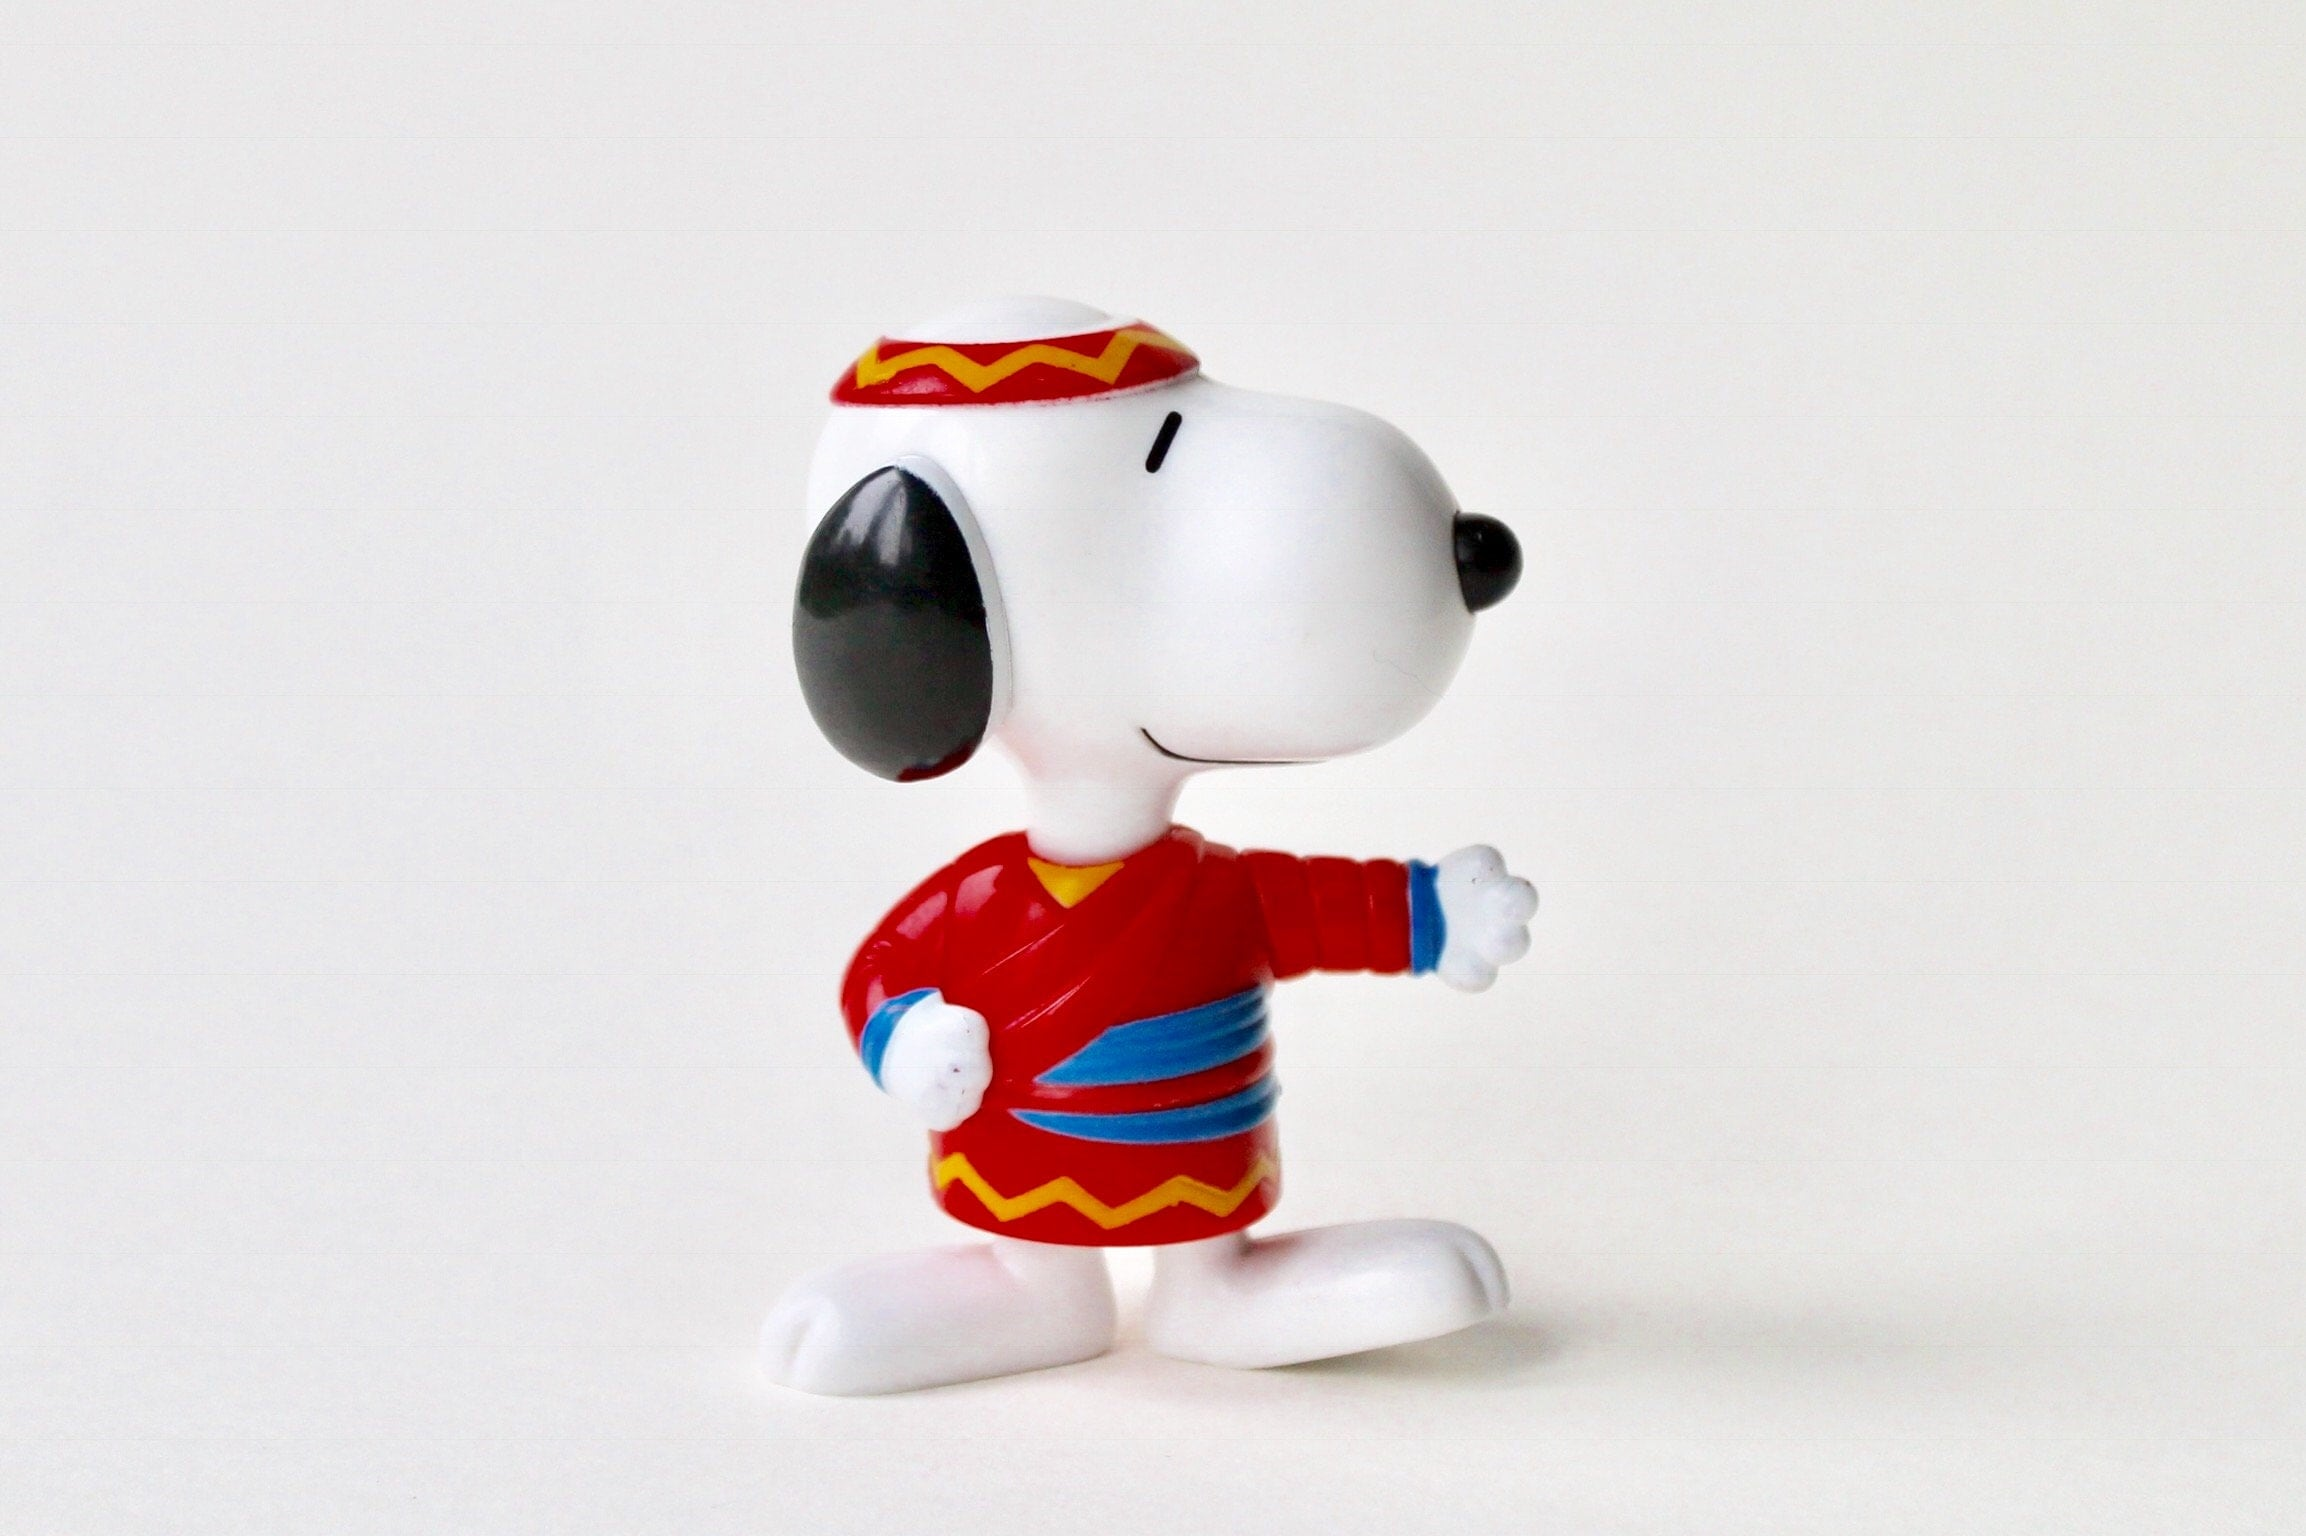 Vintage McDonalds Snoopy Taiwan 1999 toy. McDonalds Snoopy World tour Taiwan. 1999 McDonalds Happy Meal Snoopy headband Taiwan Kung Fu toy.